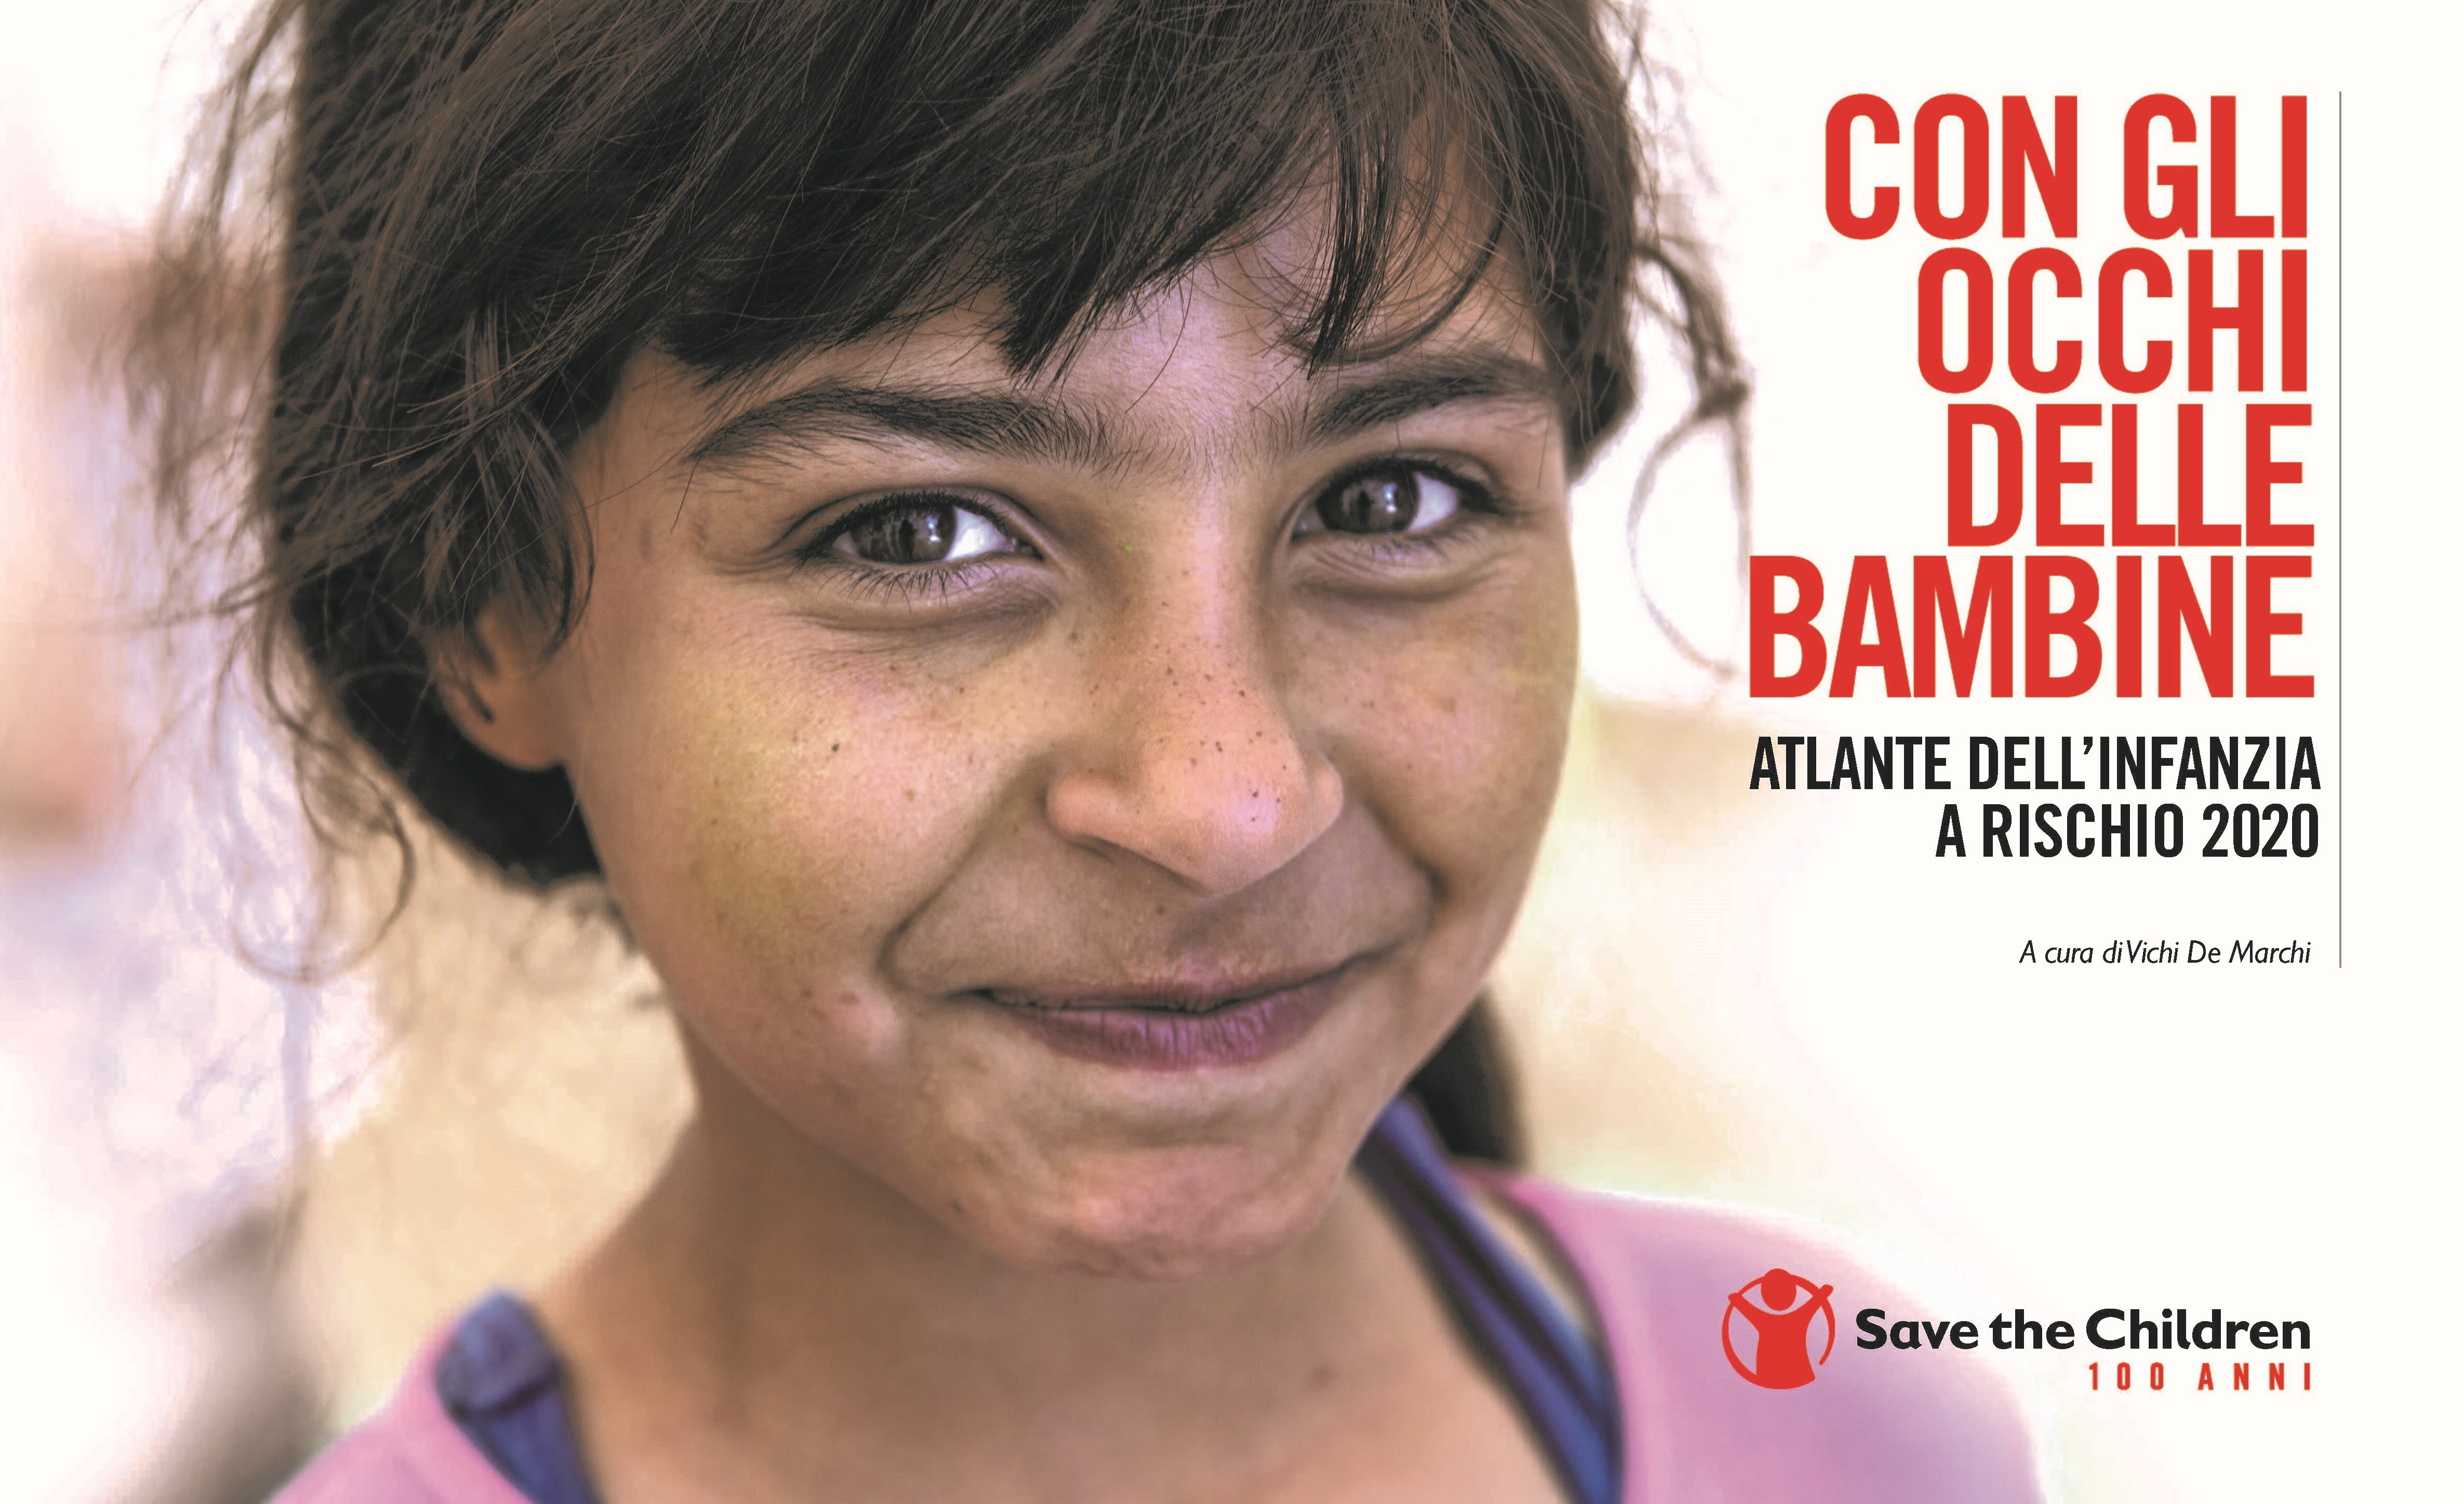 Atlante dell'infanzia a rischio 2020 Save the Children